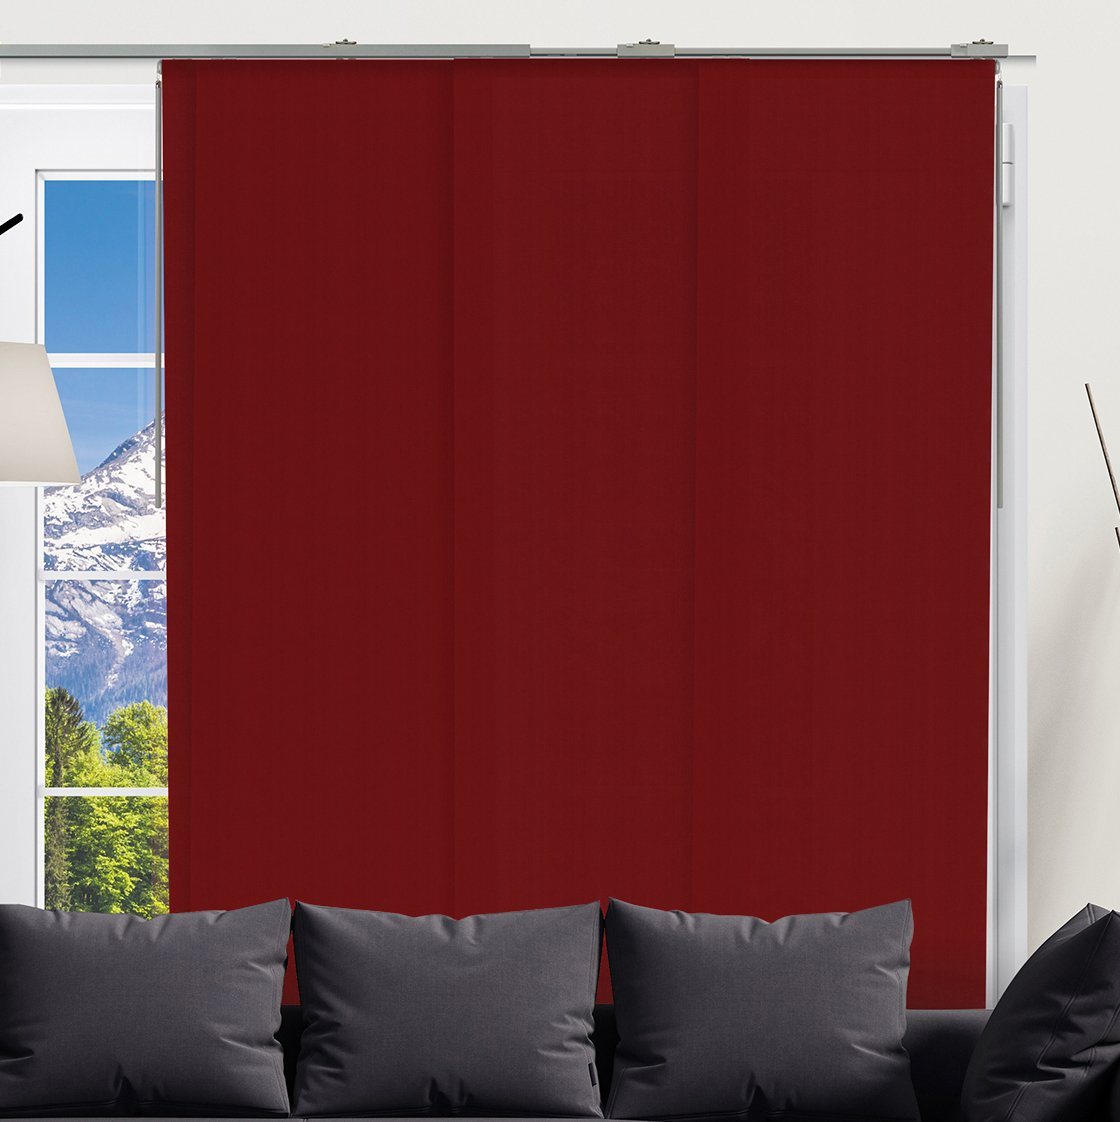 Chicology Adjustable Sliding Panel Quad Rail Track/Cordless Blind/Privacy Light Filtering Fabric, Allure Burgundy, 200 x 245 cm QRSPAB1